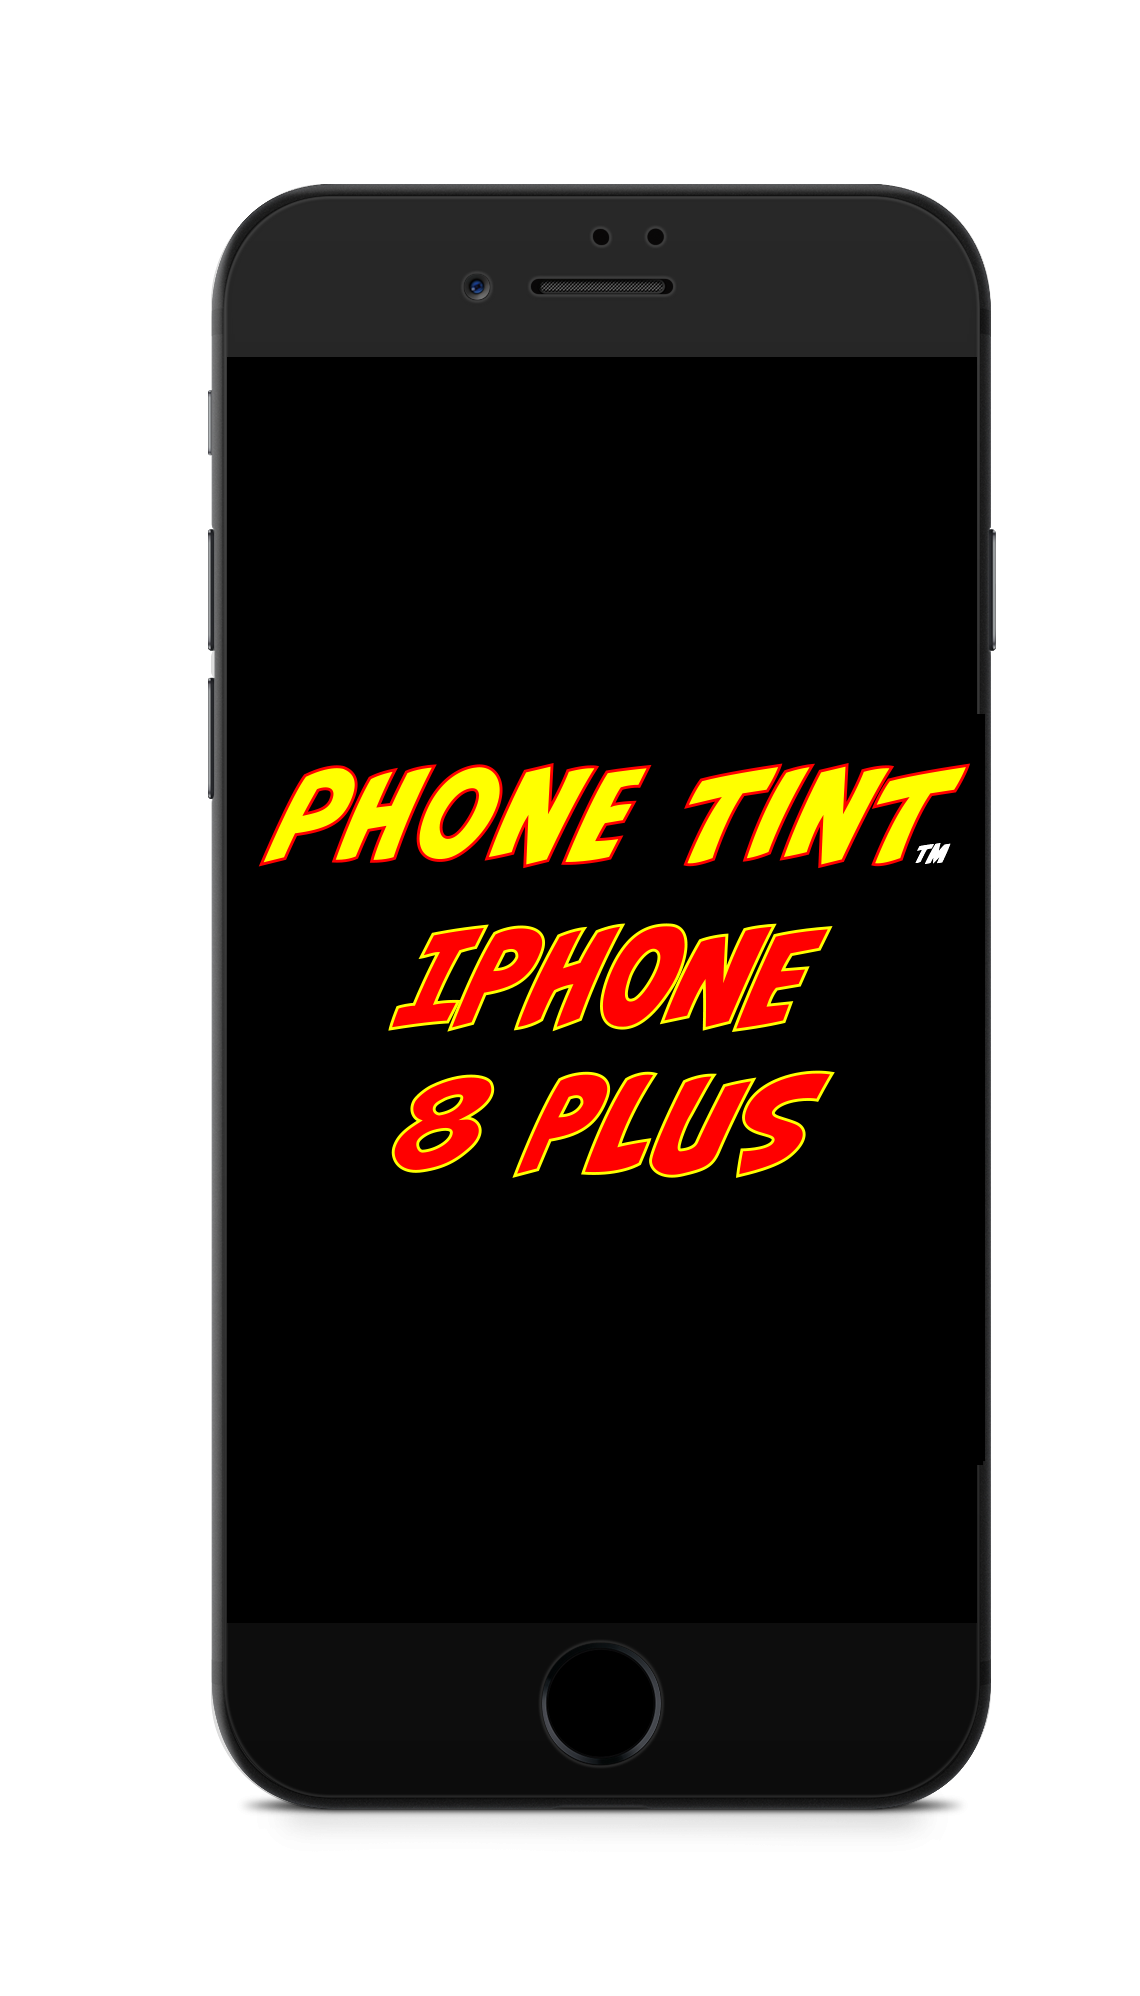 Iphone 8 plus phone tint privacy tempered glass screen protector. SKINZ Edmonton